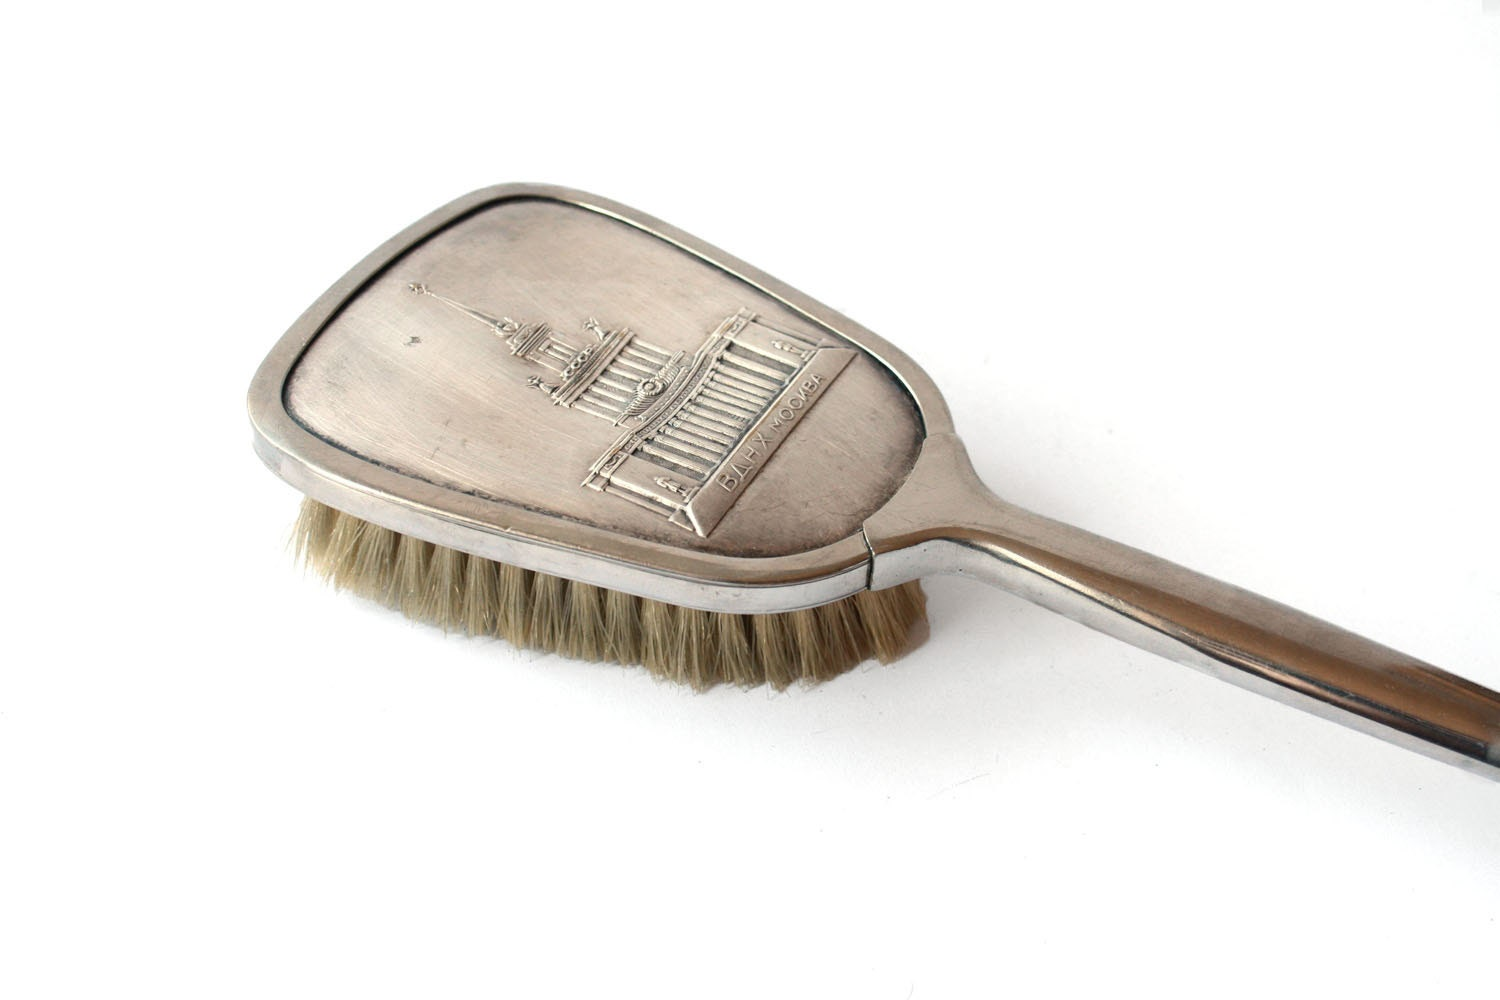 vintage clothes brush from soviet union 50 s by sovietvintage